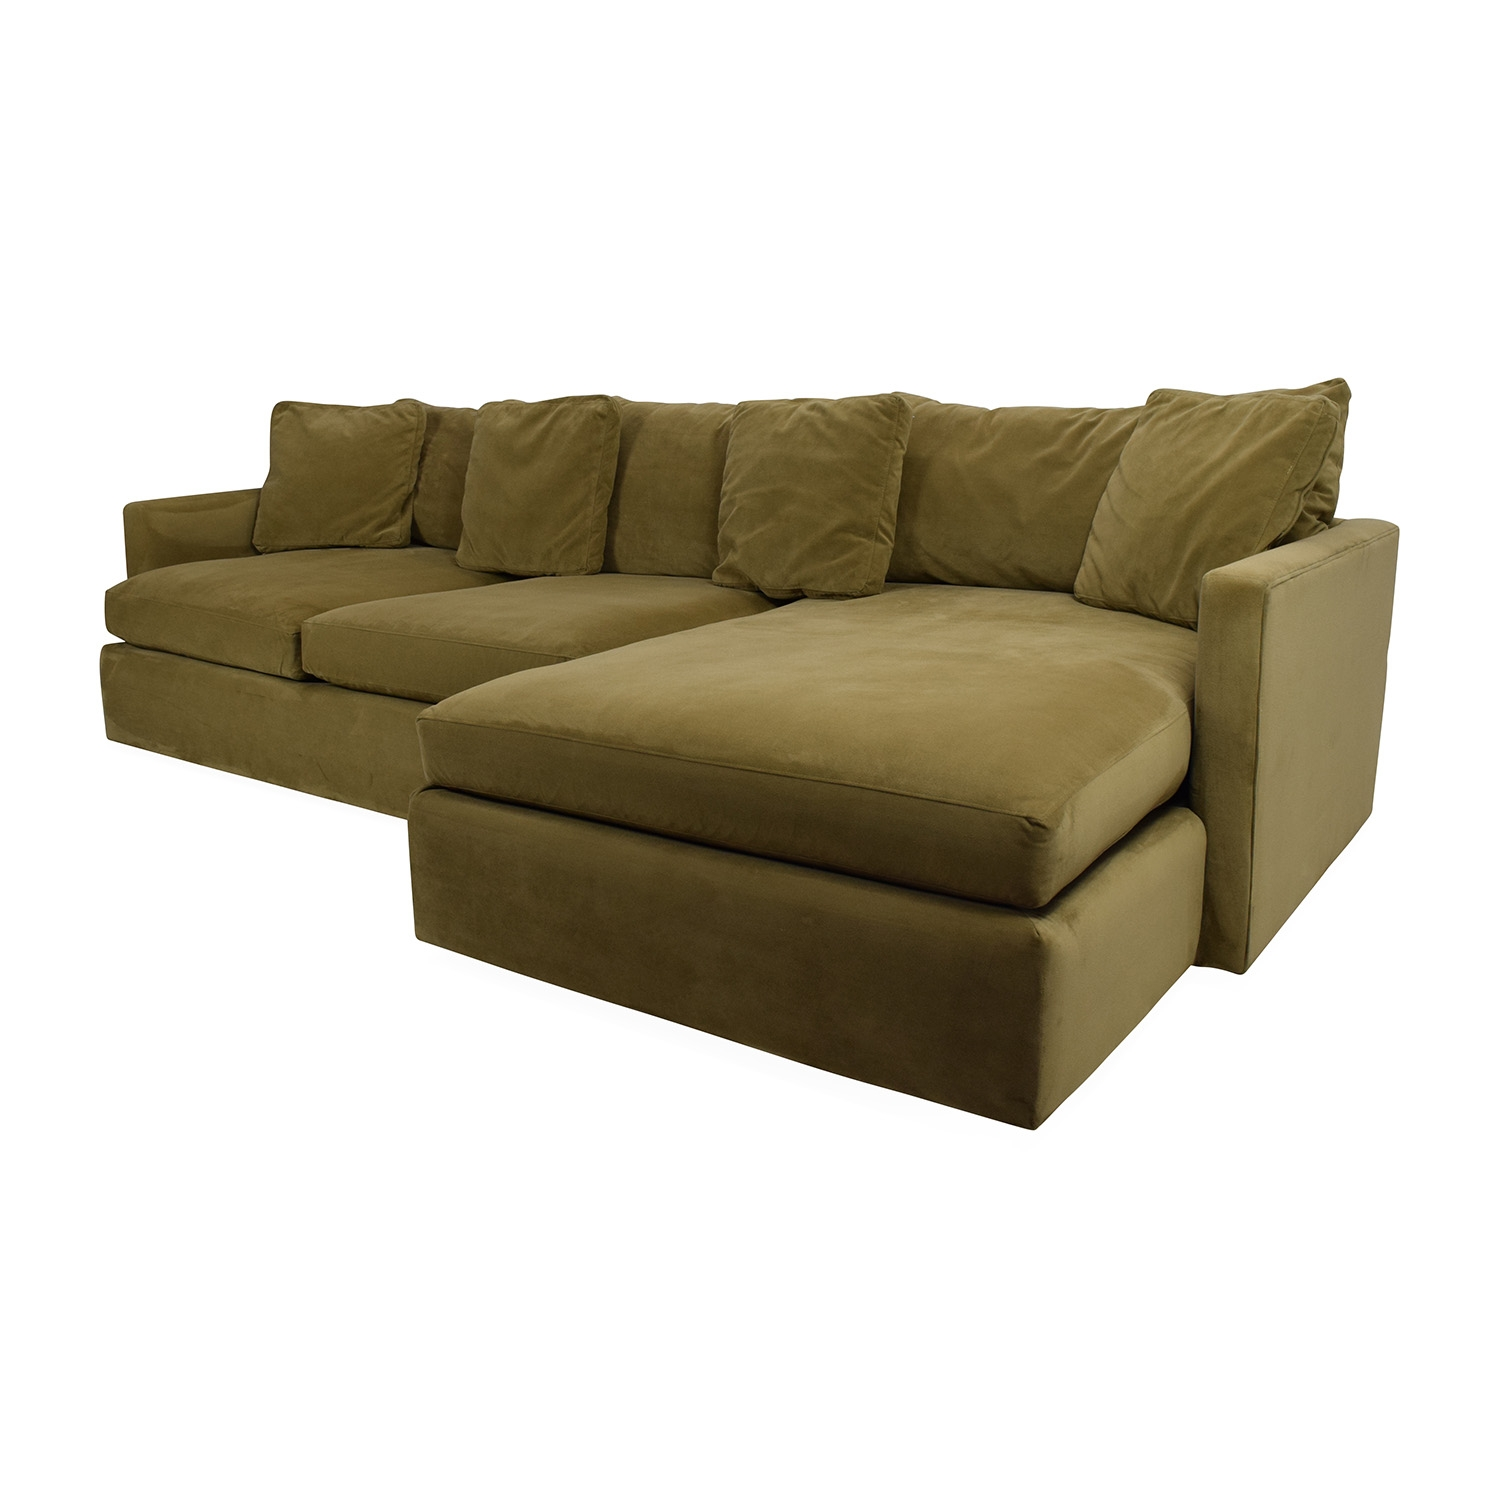 65 Off Crate And Barrel Crate And Barrel Lounge Ii Sectional Intended For Crate And Barrel  sc 1 st  Home Design Projects : crate and barrell sectional - Sectionals, Sofas & Couches